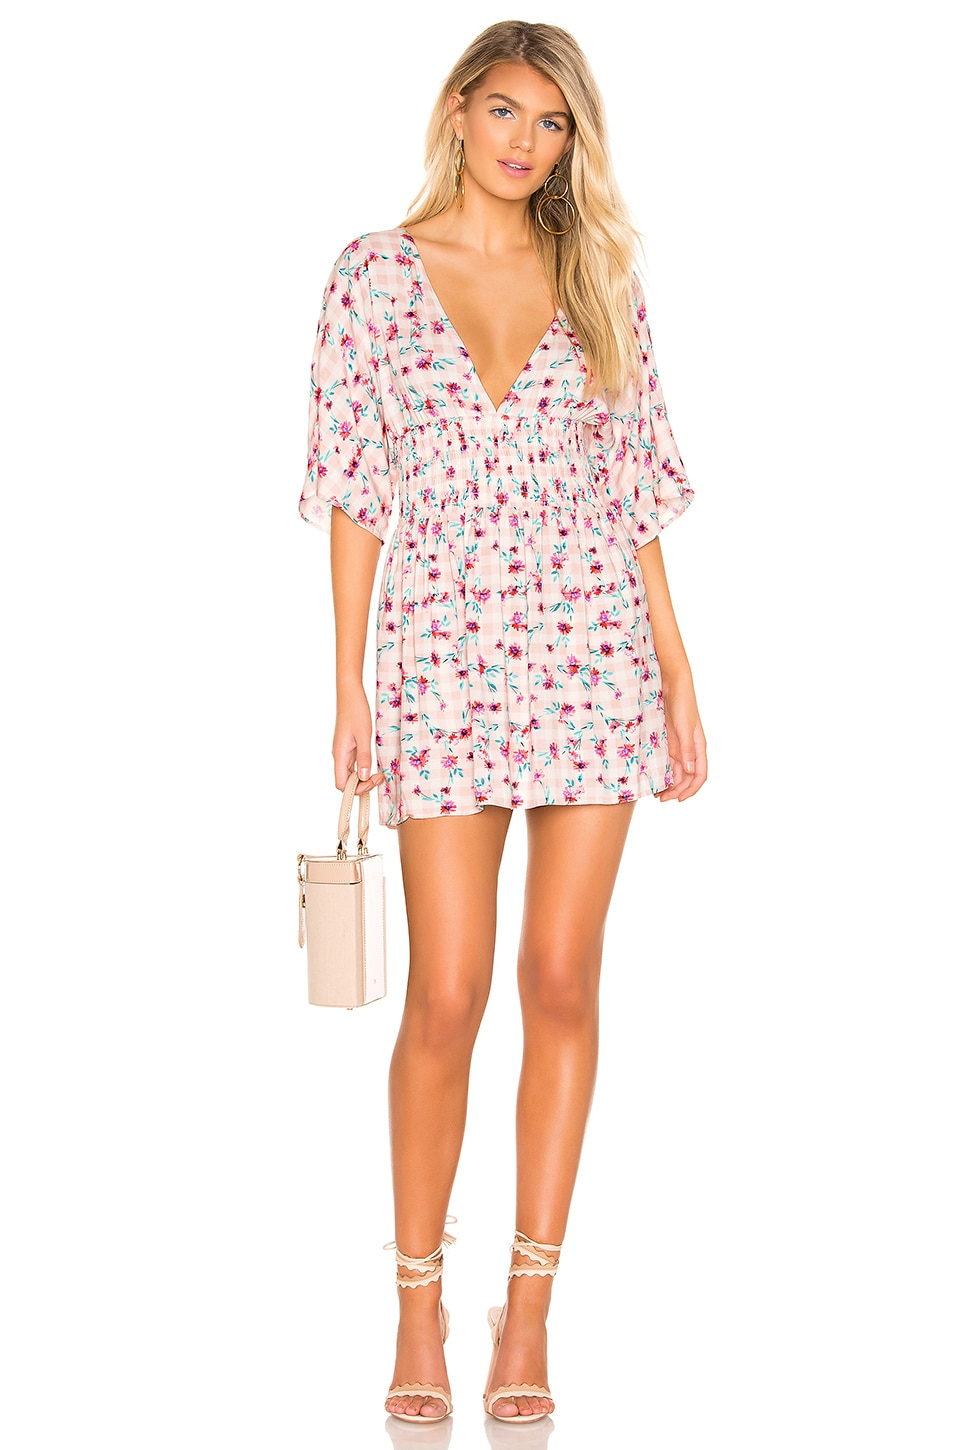 Lovers + Friends Cacia Dress in Gingham Floral